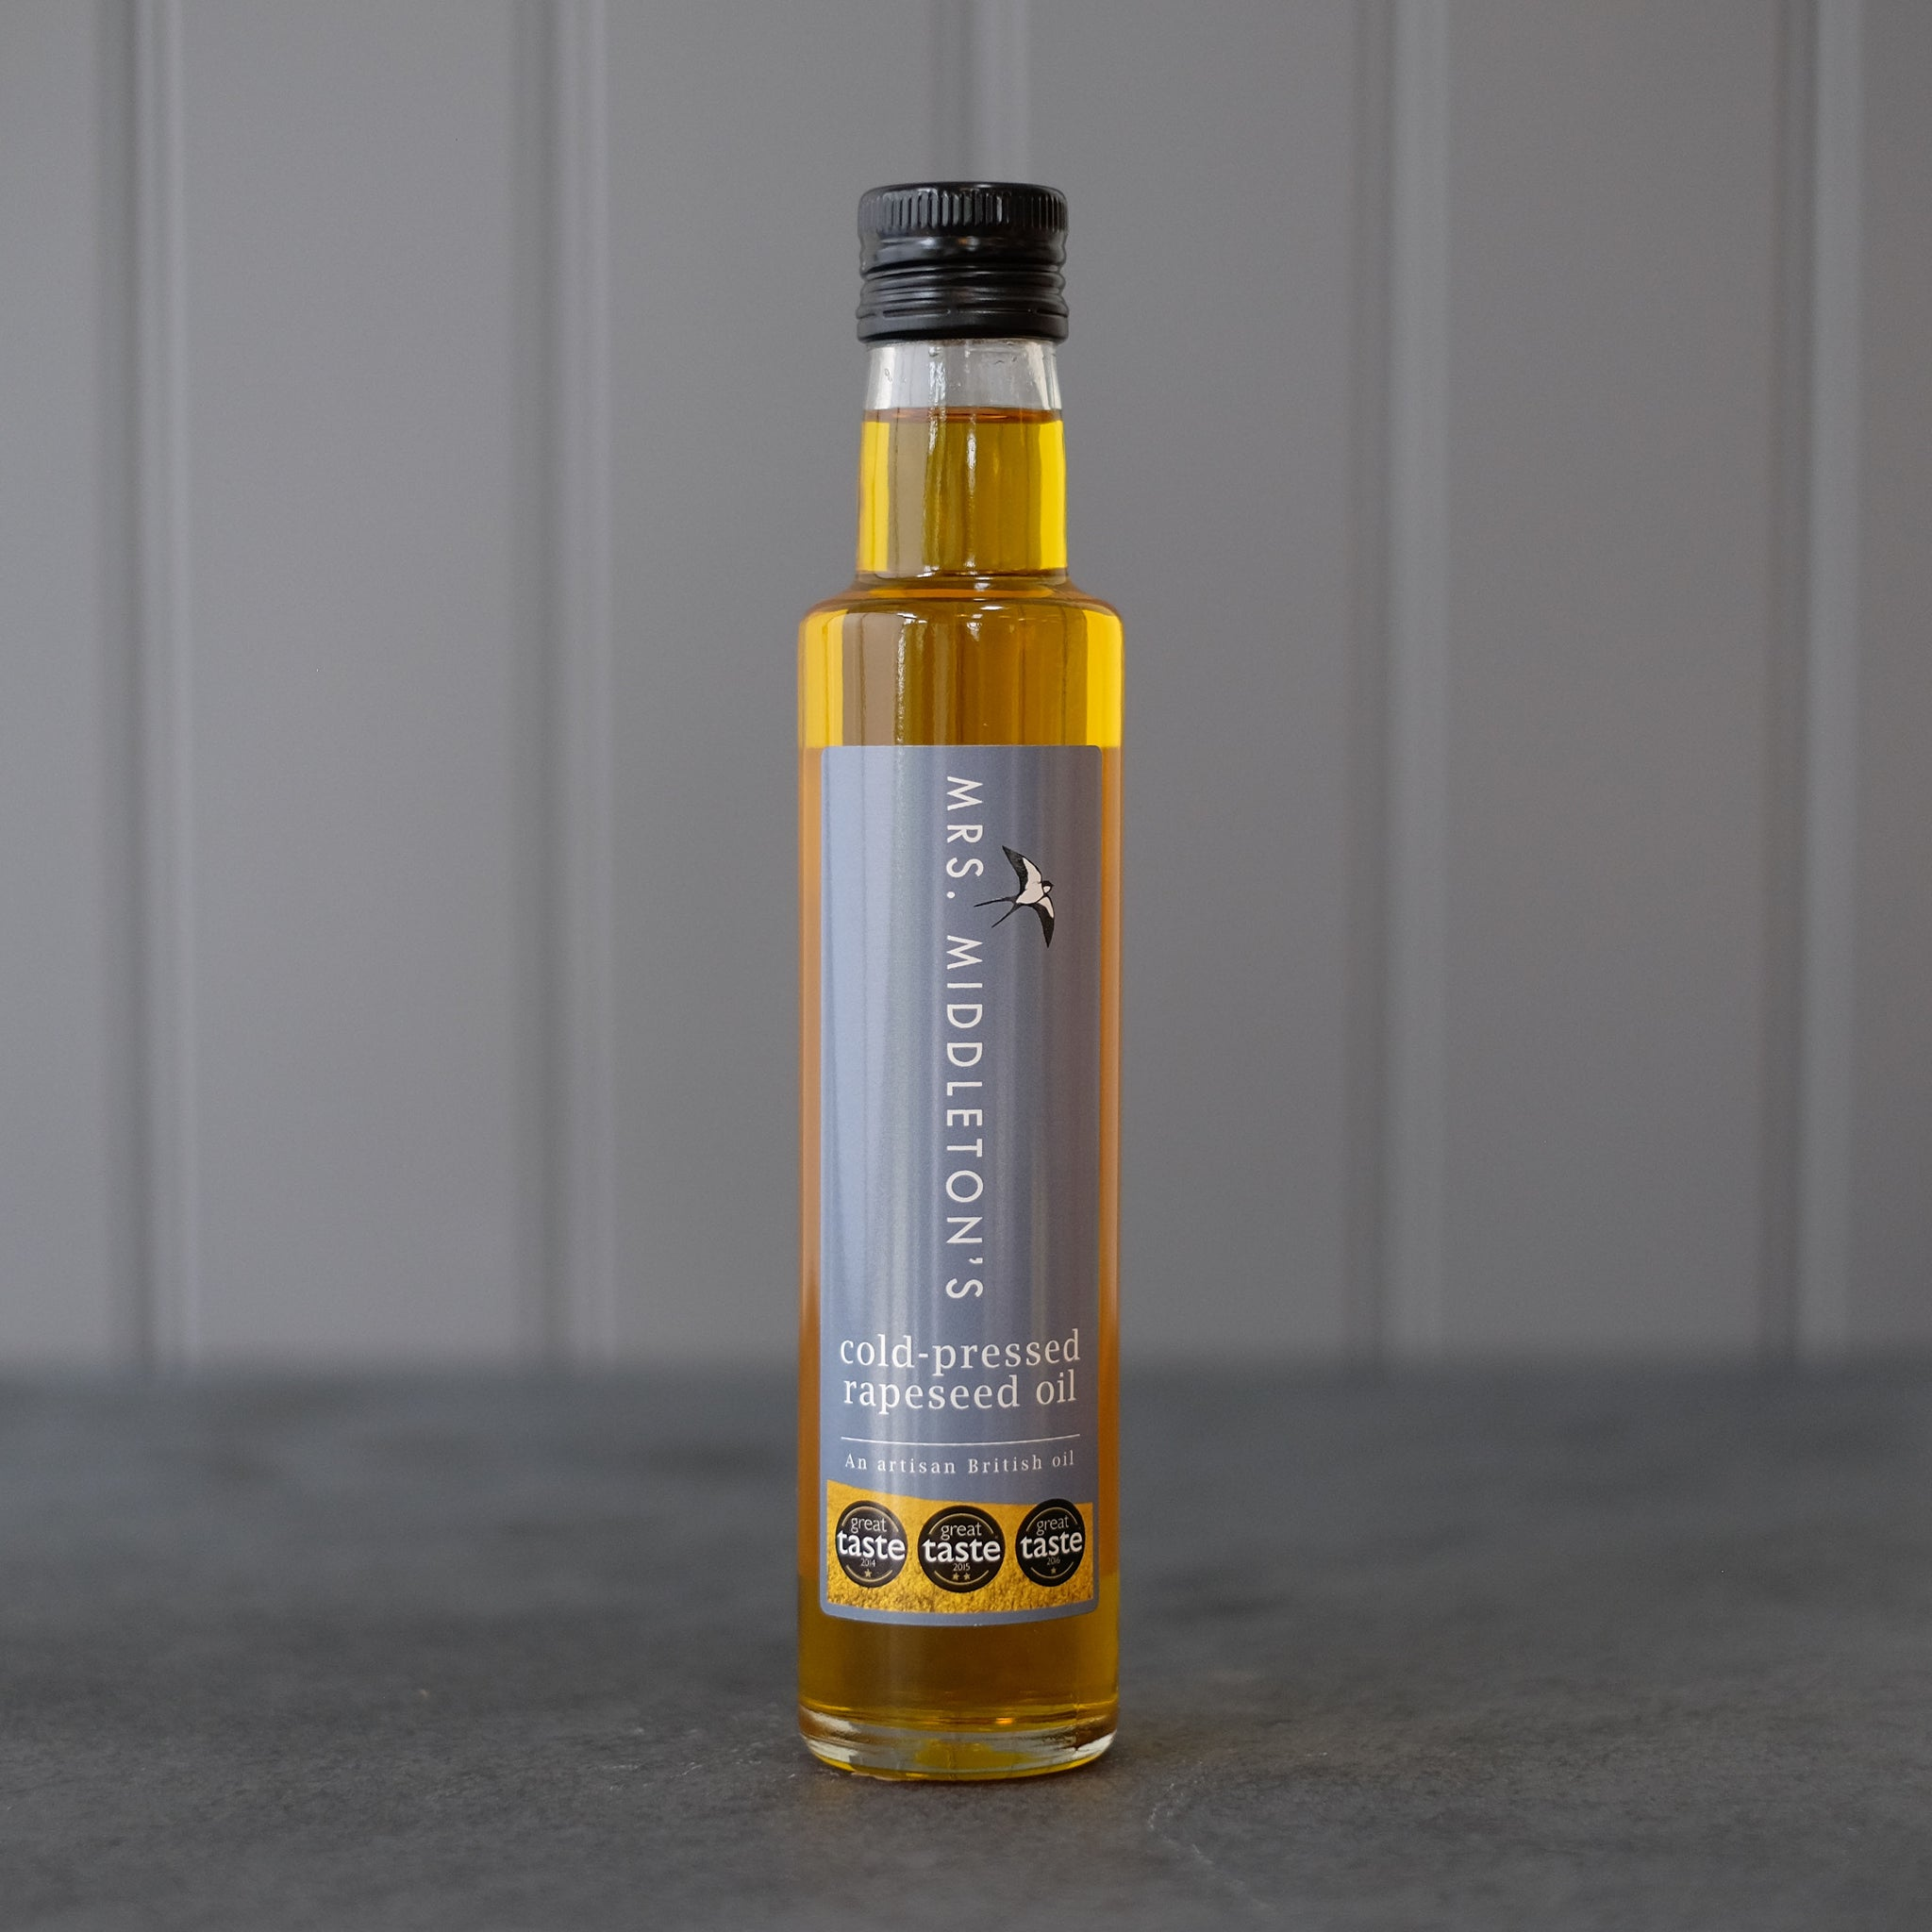 Cold-pressed rapeseed oil - Natural